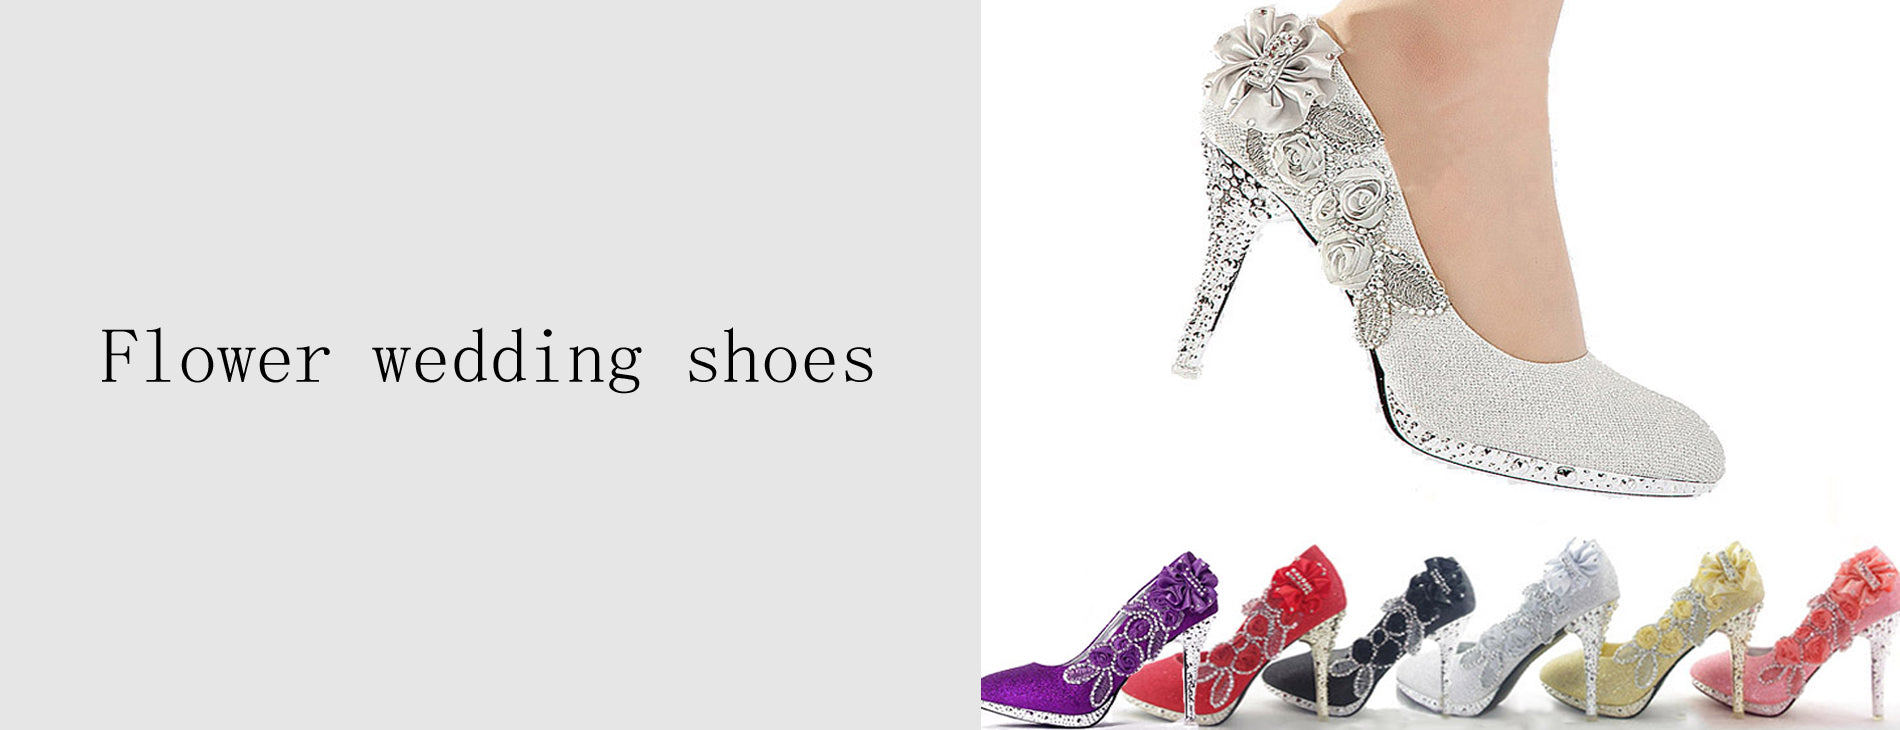 7d26f0240e2 Get More Beauty Shoes for Your Dress.Enjoy the Fashion Show ! -  getmorebeautyinbox